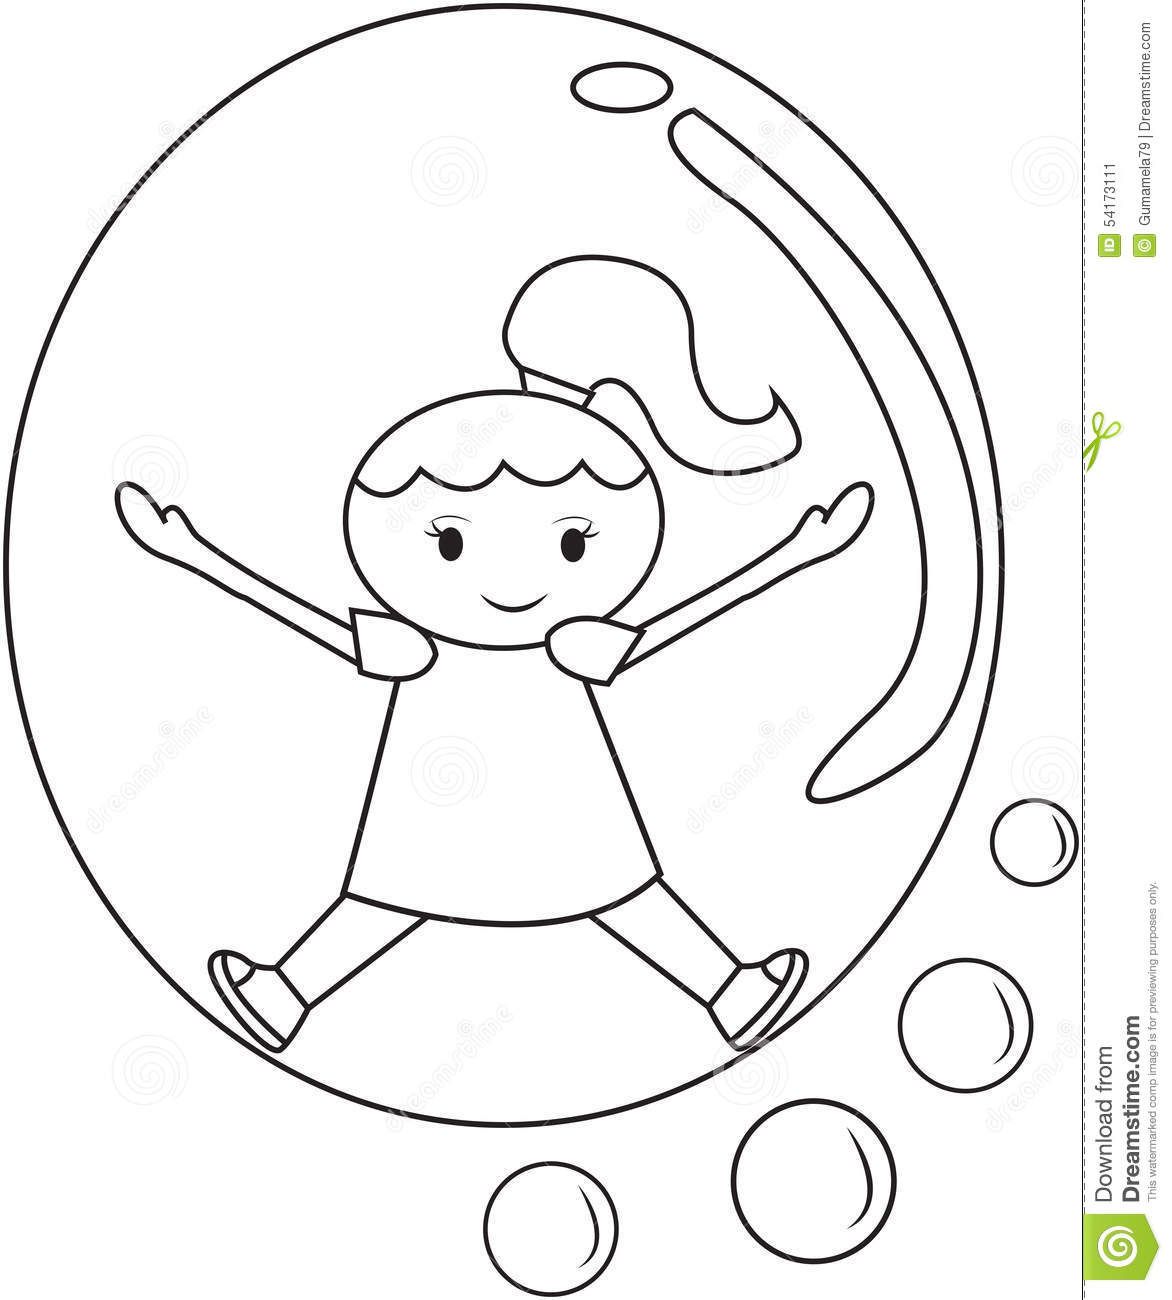 Girl inside a bubble coloring page stock illustration illustration